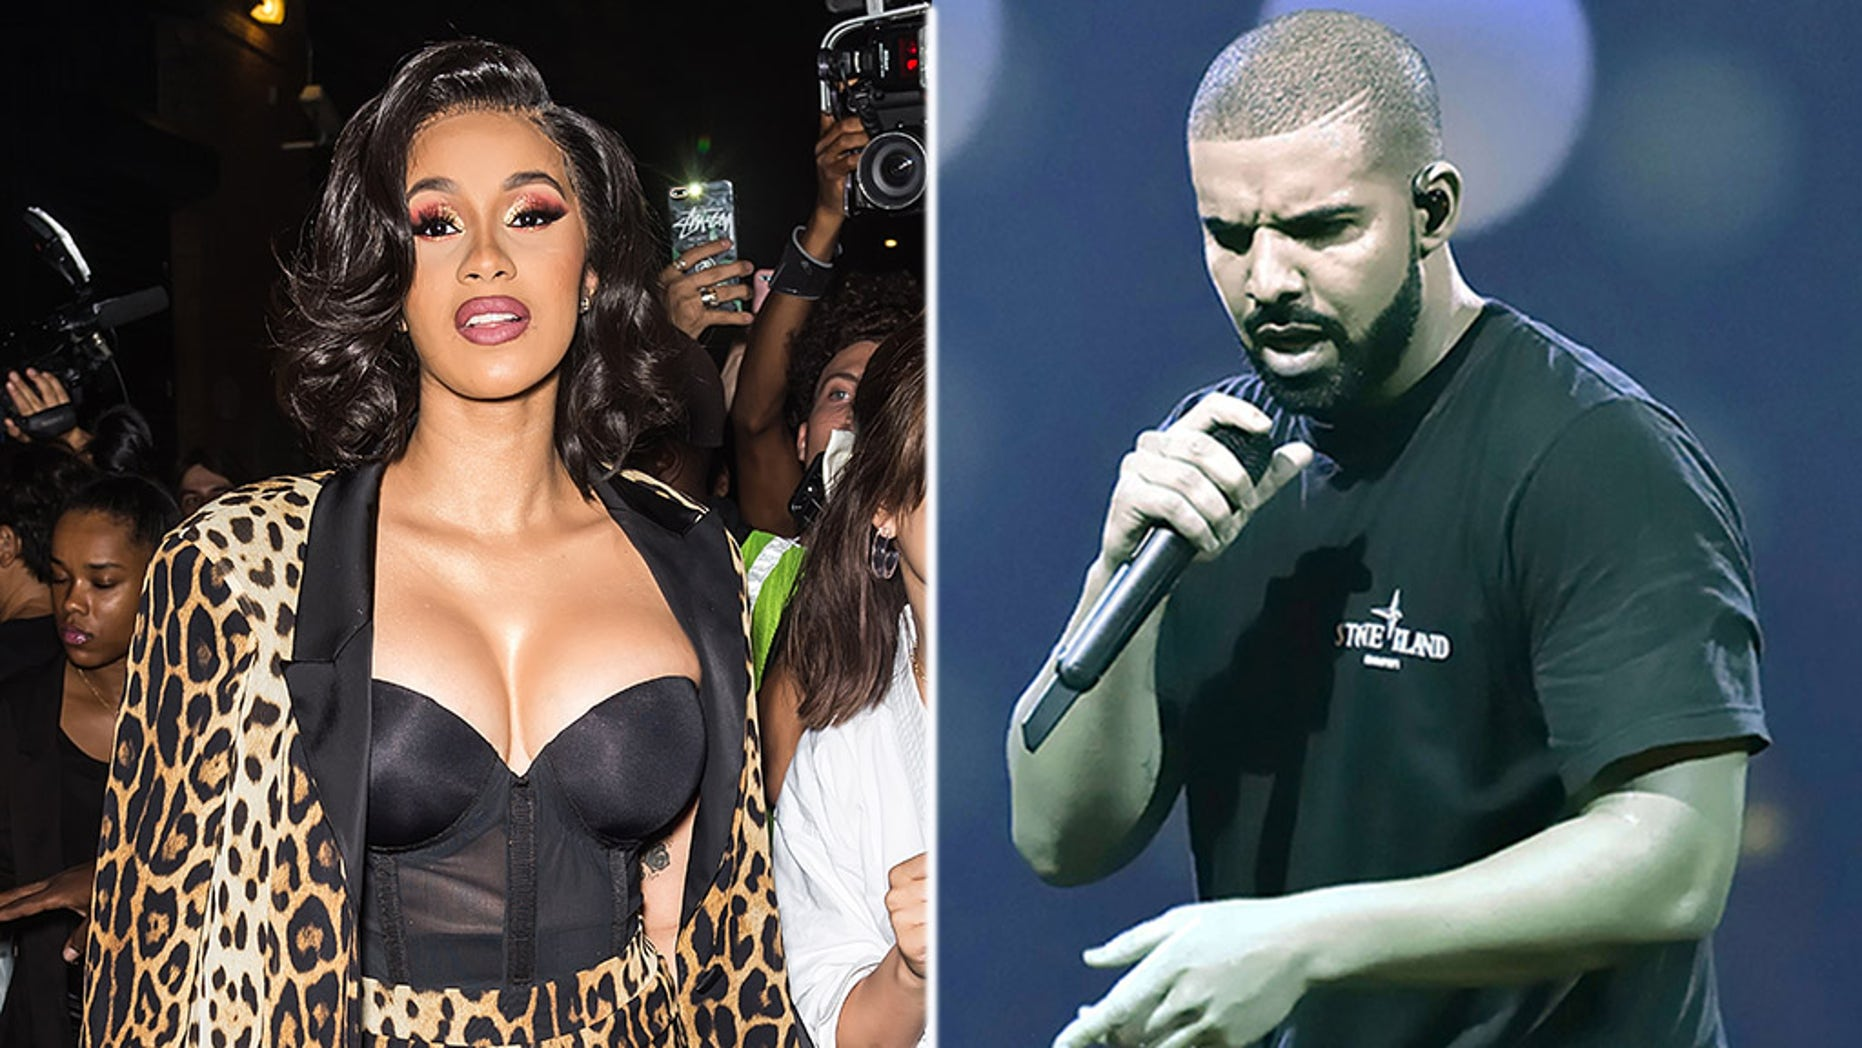 Drake, Cardi B lead the 2018 American Music Awards with 8 nods each.